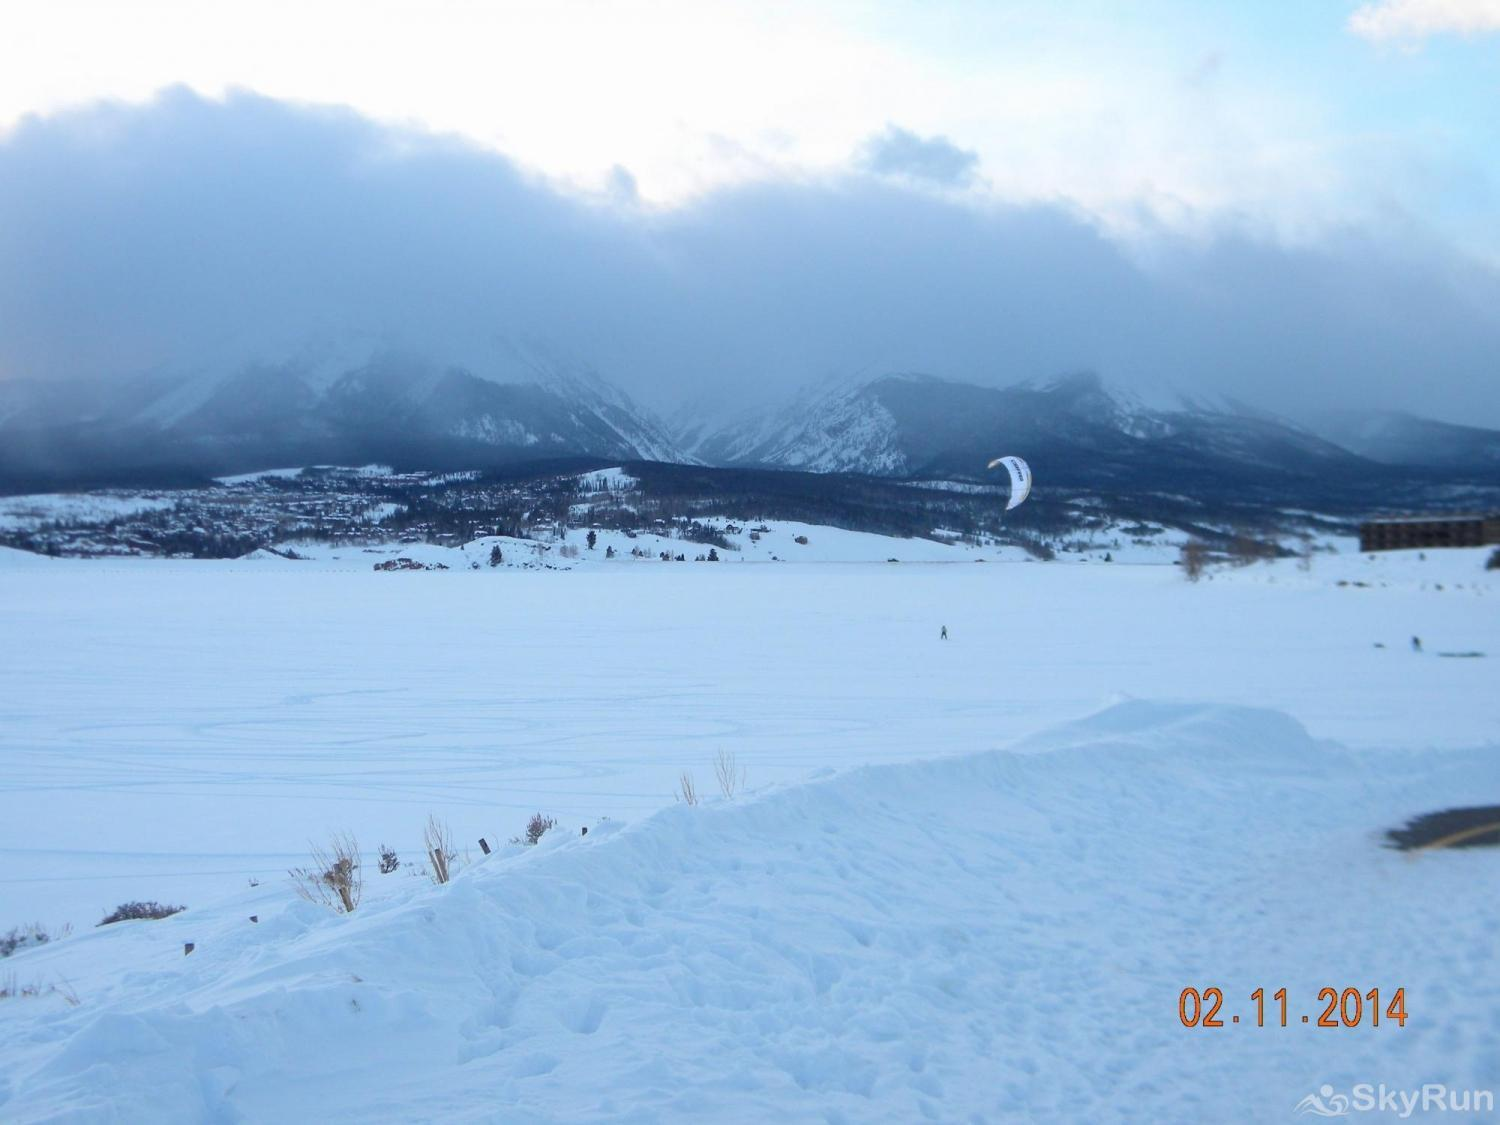 A208 Lake Cliffe Condos  2BR 2BA Winter activities on Lake Dillon